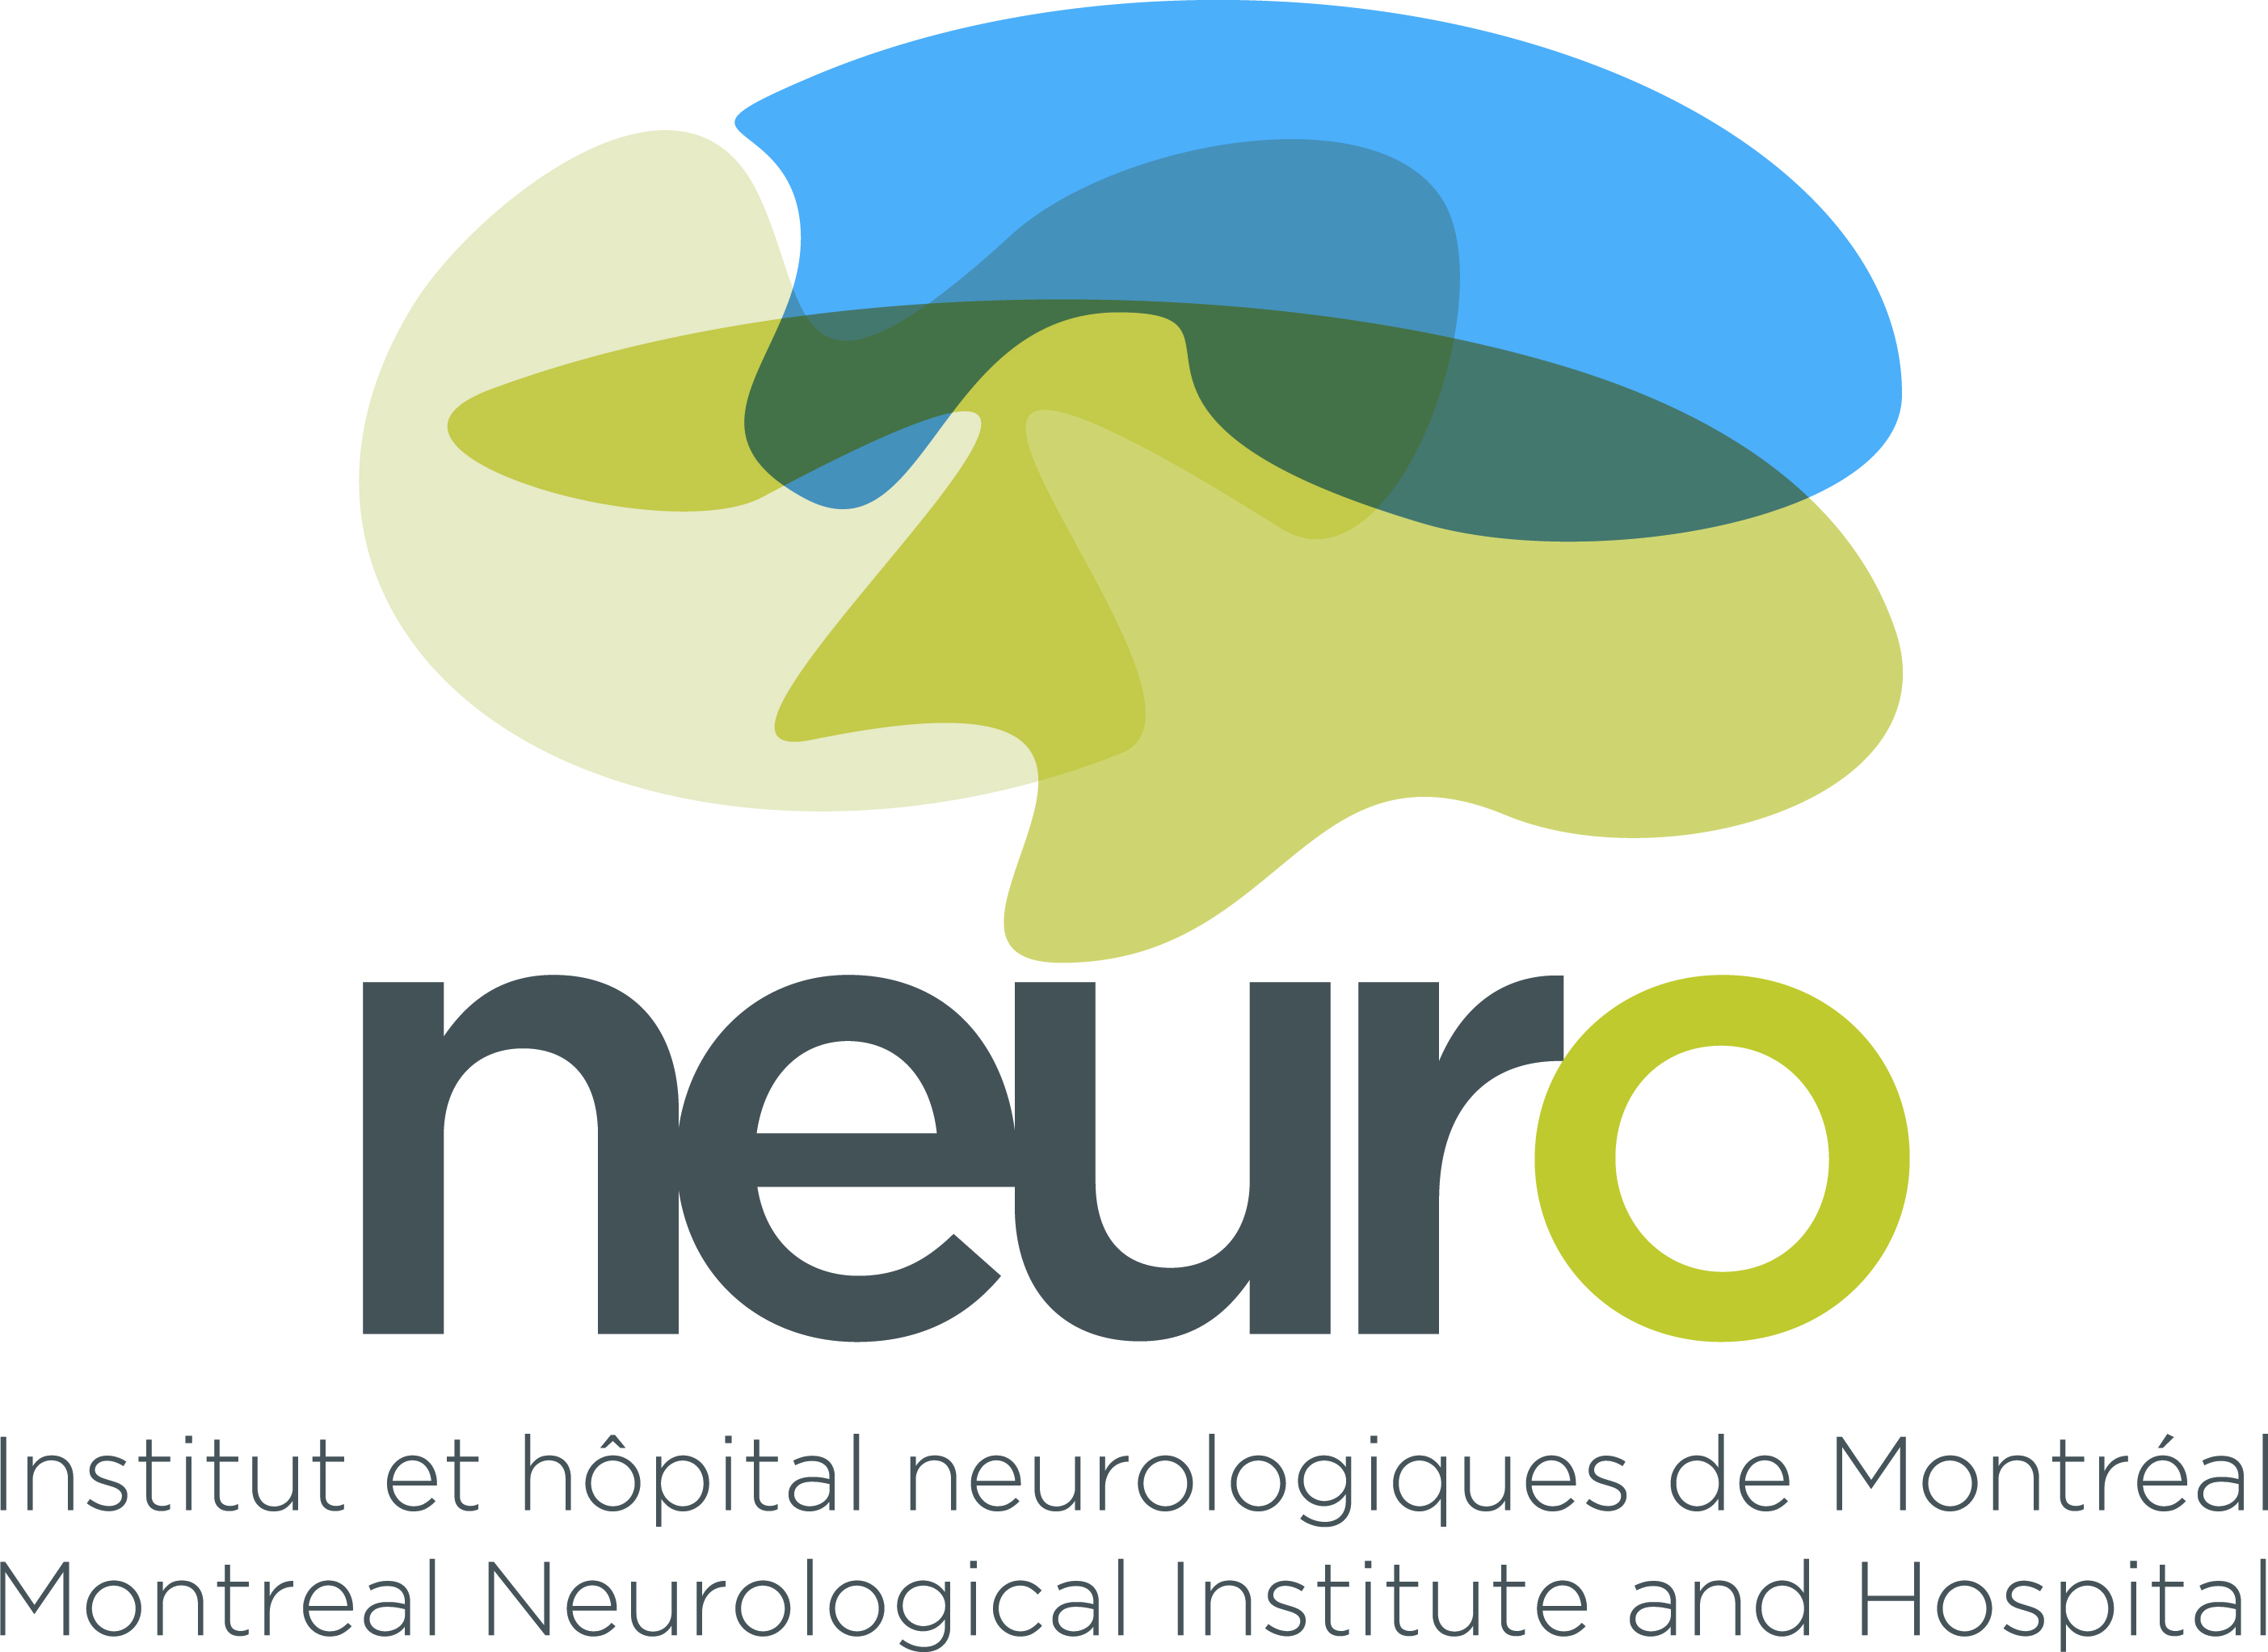 The Neuro - Montreal Neurological Institute